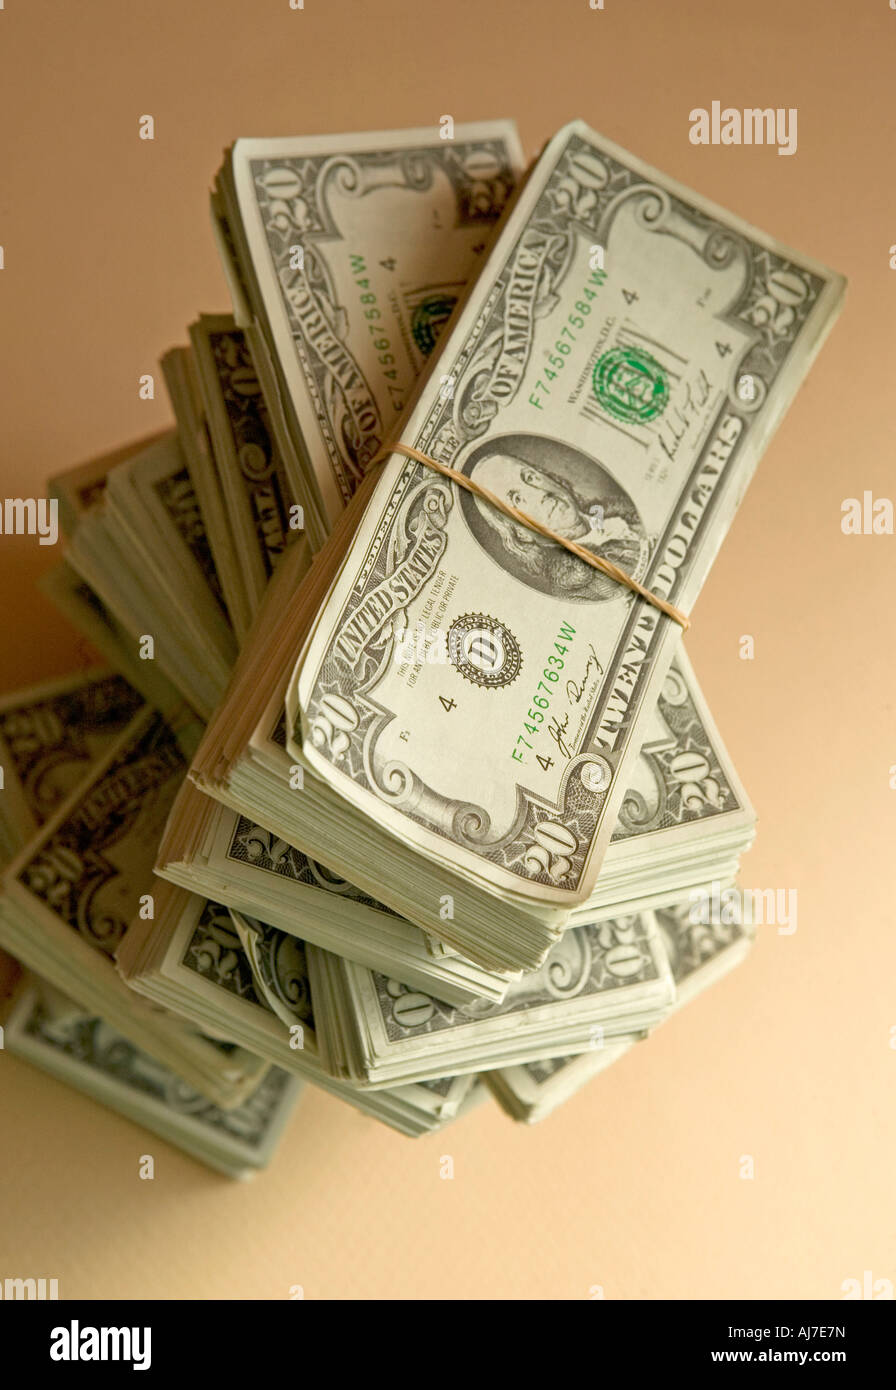 stack of money in pile with 20 dollar bills - Stock Image